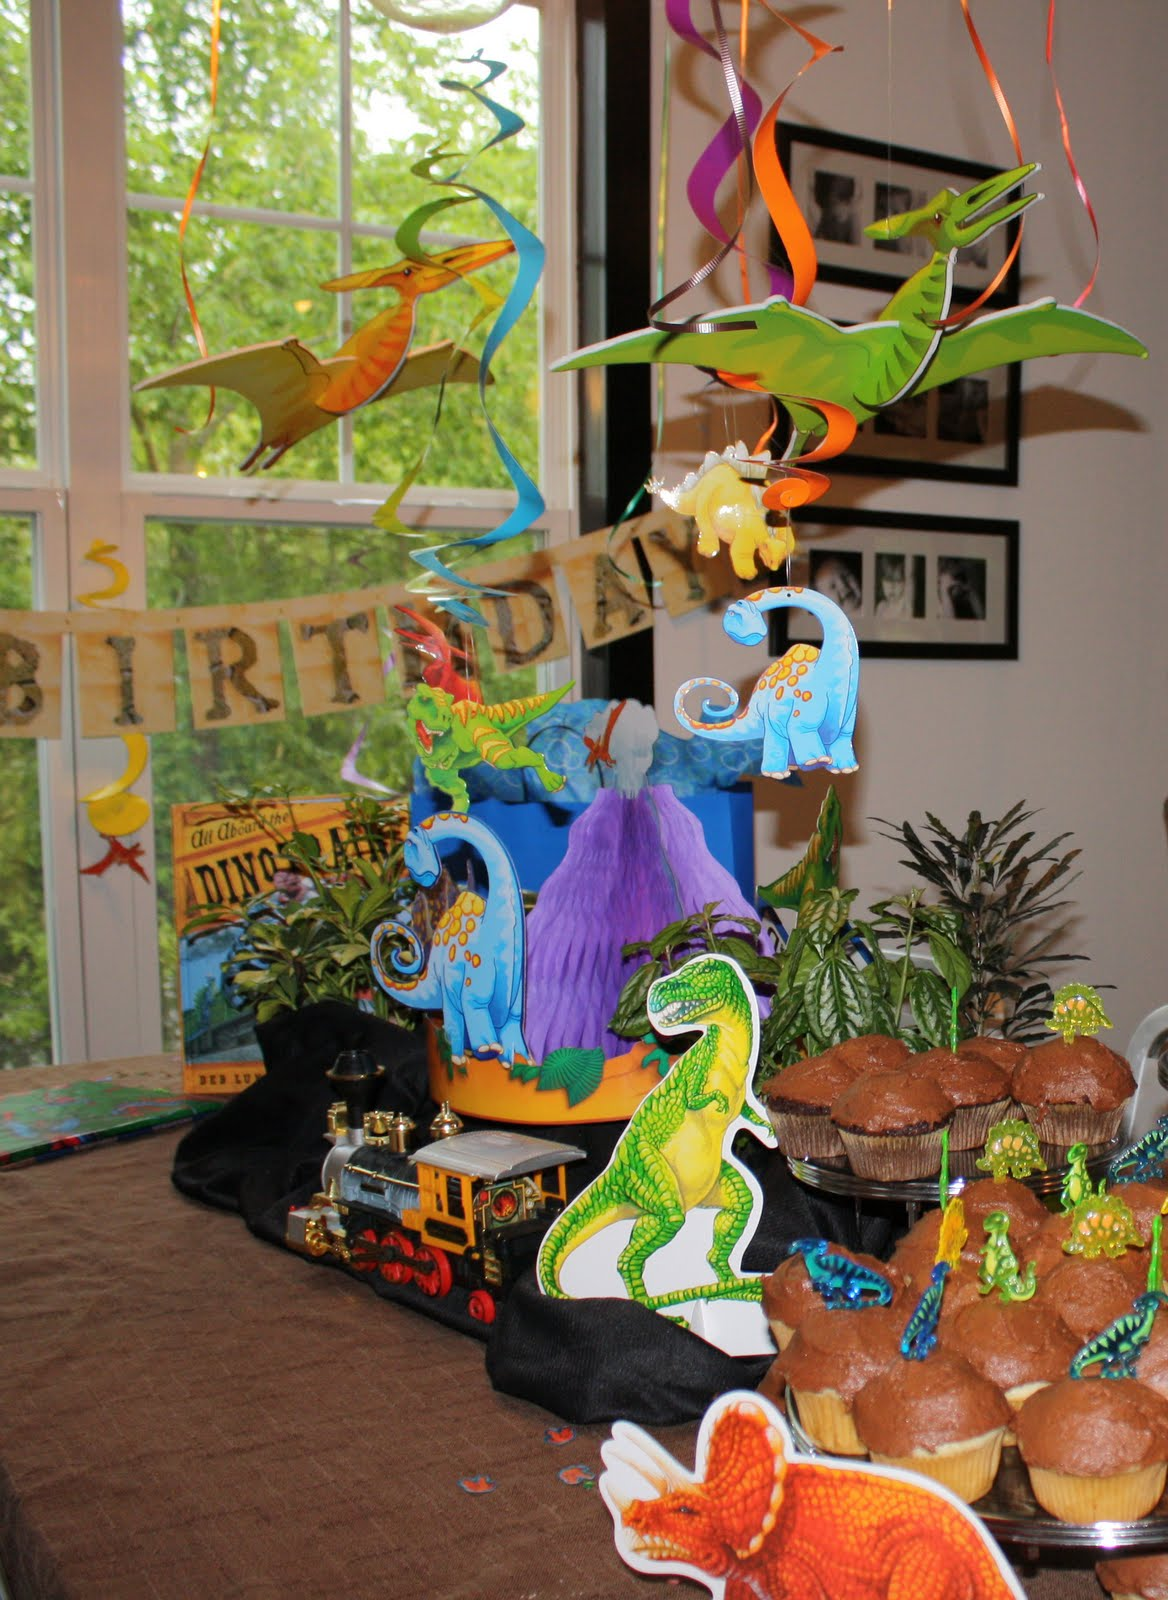 academy at thousand oaks: Dinosaur Train Birthday Party